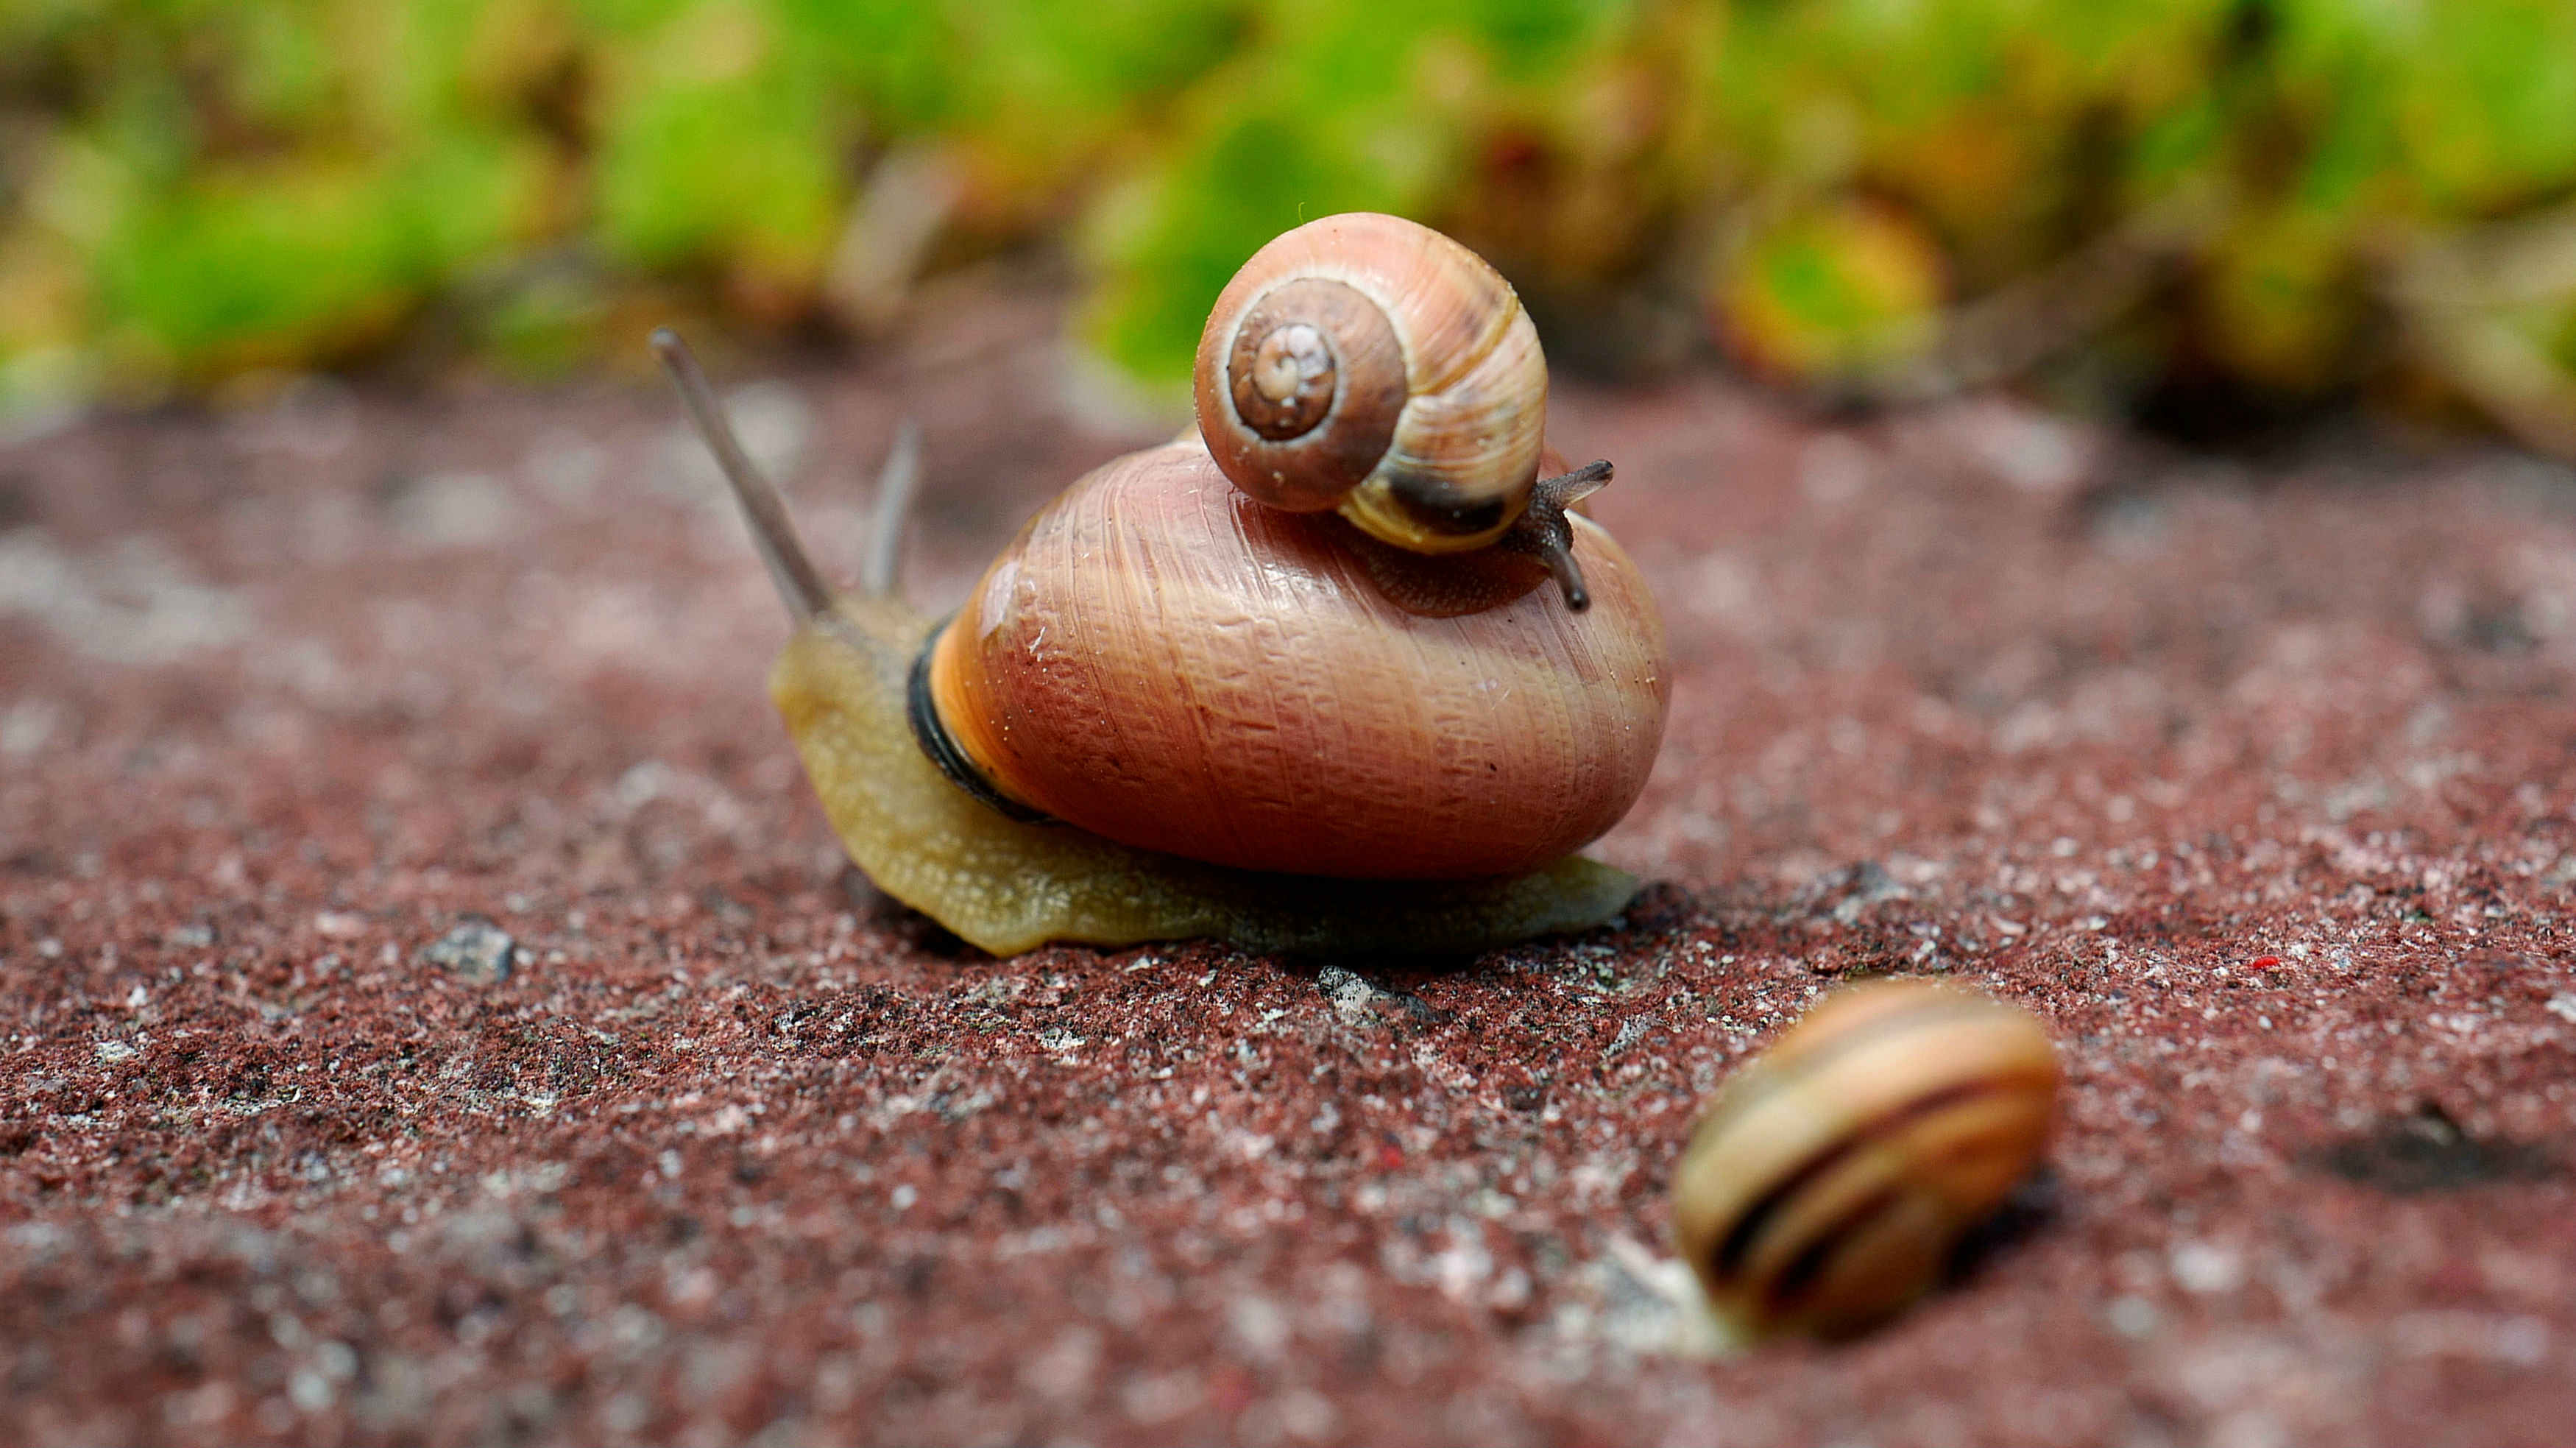 three snails on the ground, one sits on top of another.